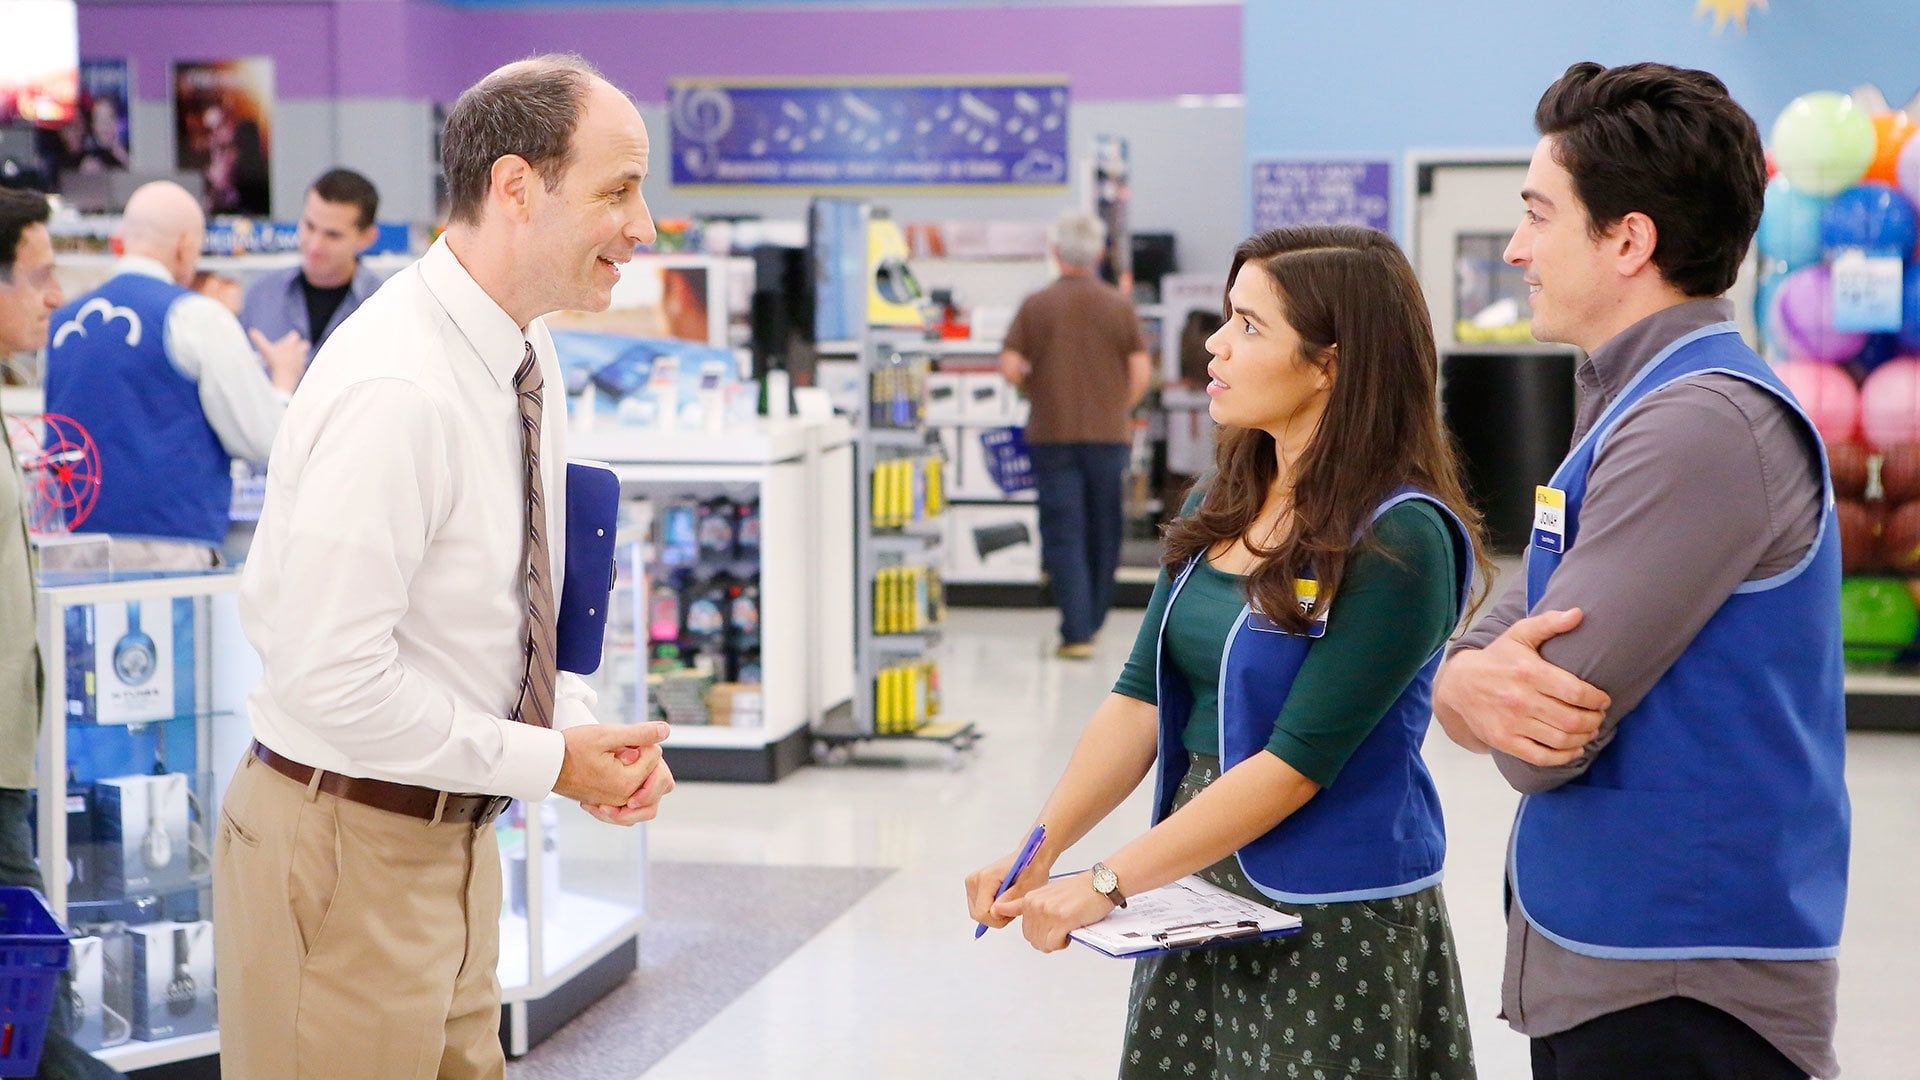 Superstore - Season 2 Episode 3 : Back to Work